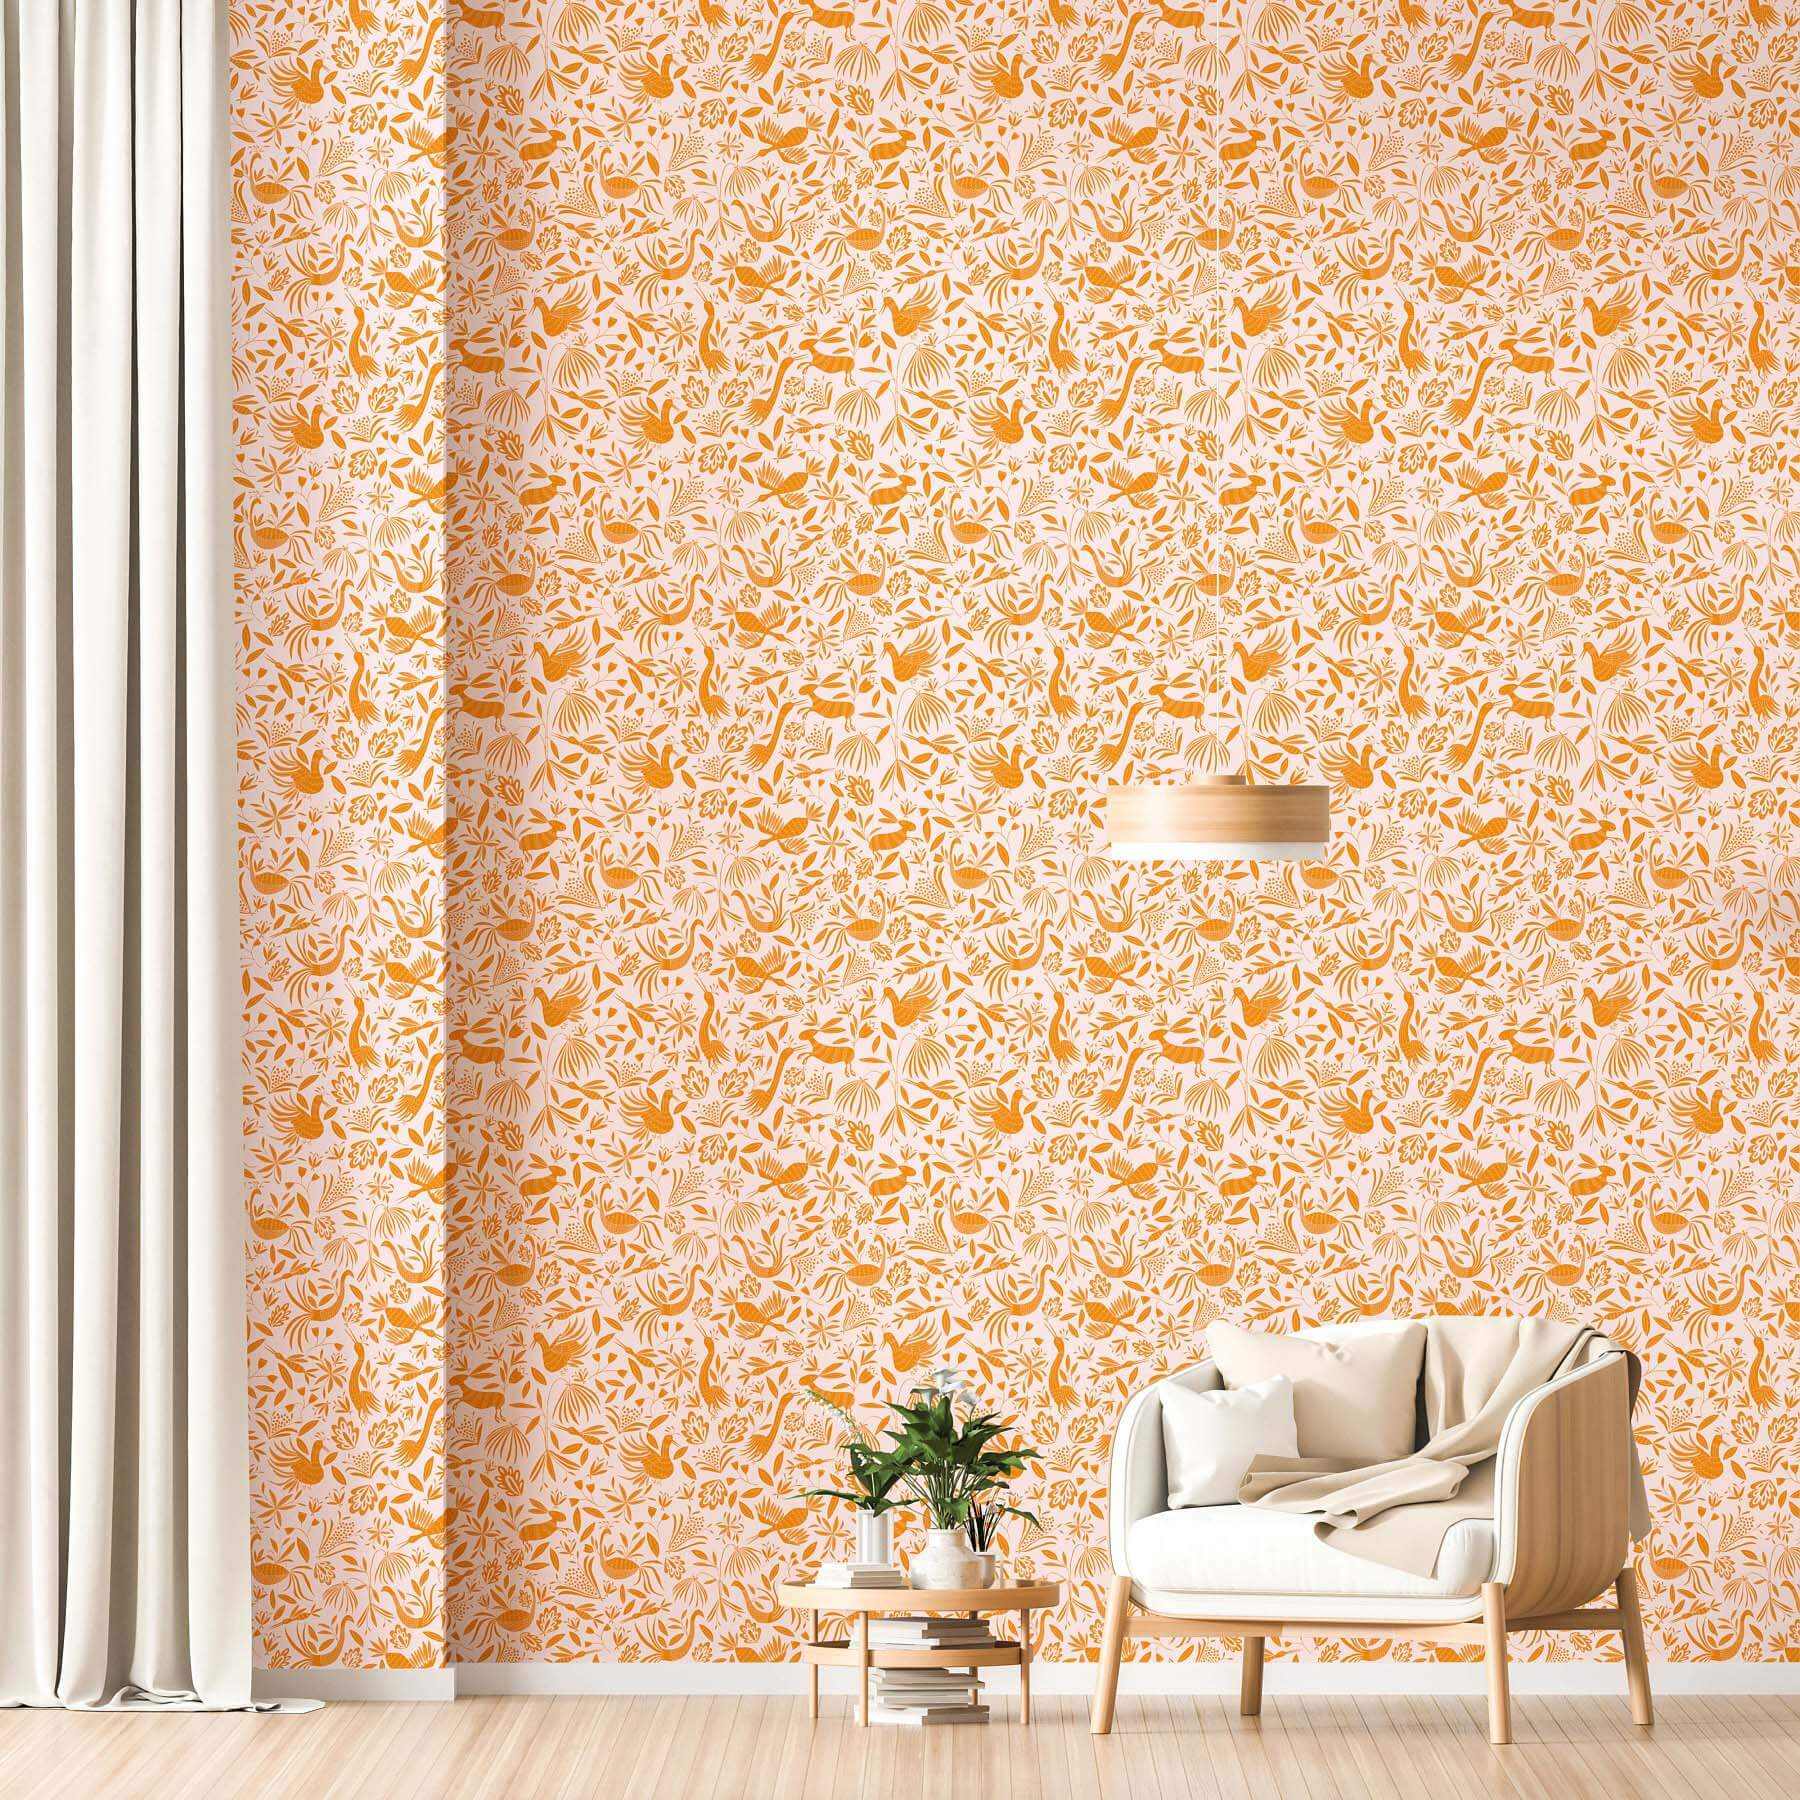 Scandinavian-style interior with wooden armchair in front of orange wallpaper installation